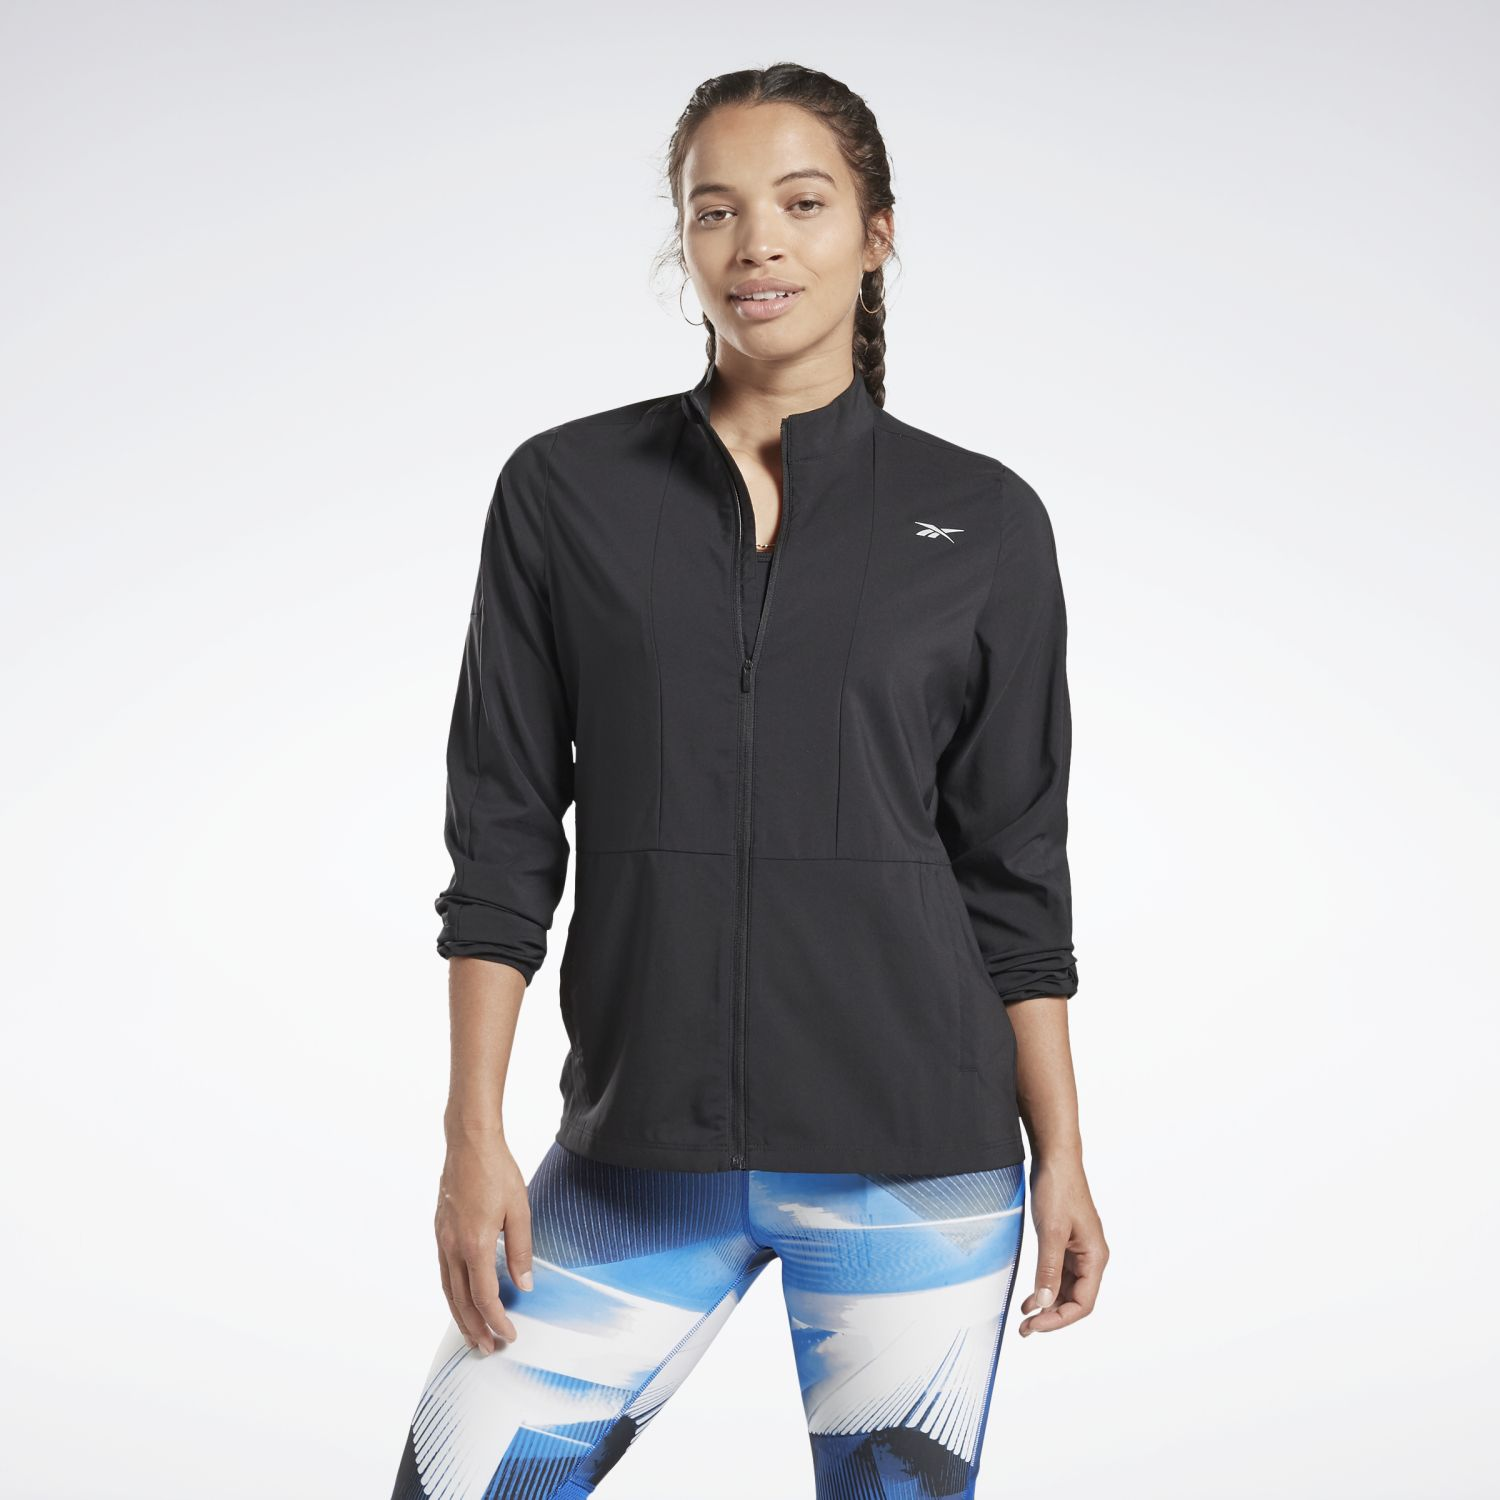 Reebok RE WIND JACKET Negro Casacas de Atletismo